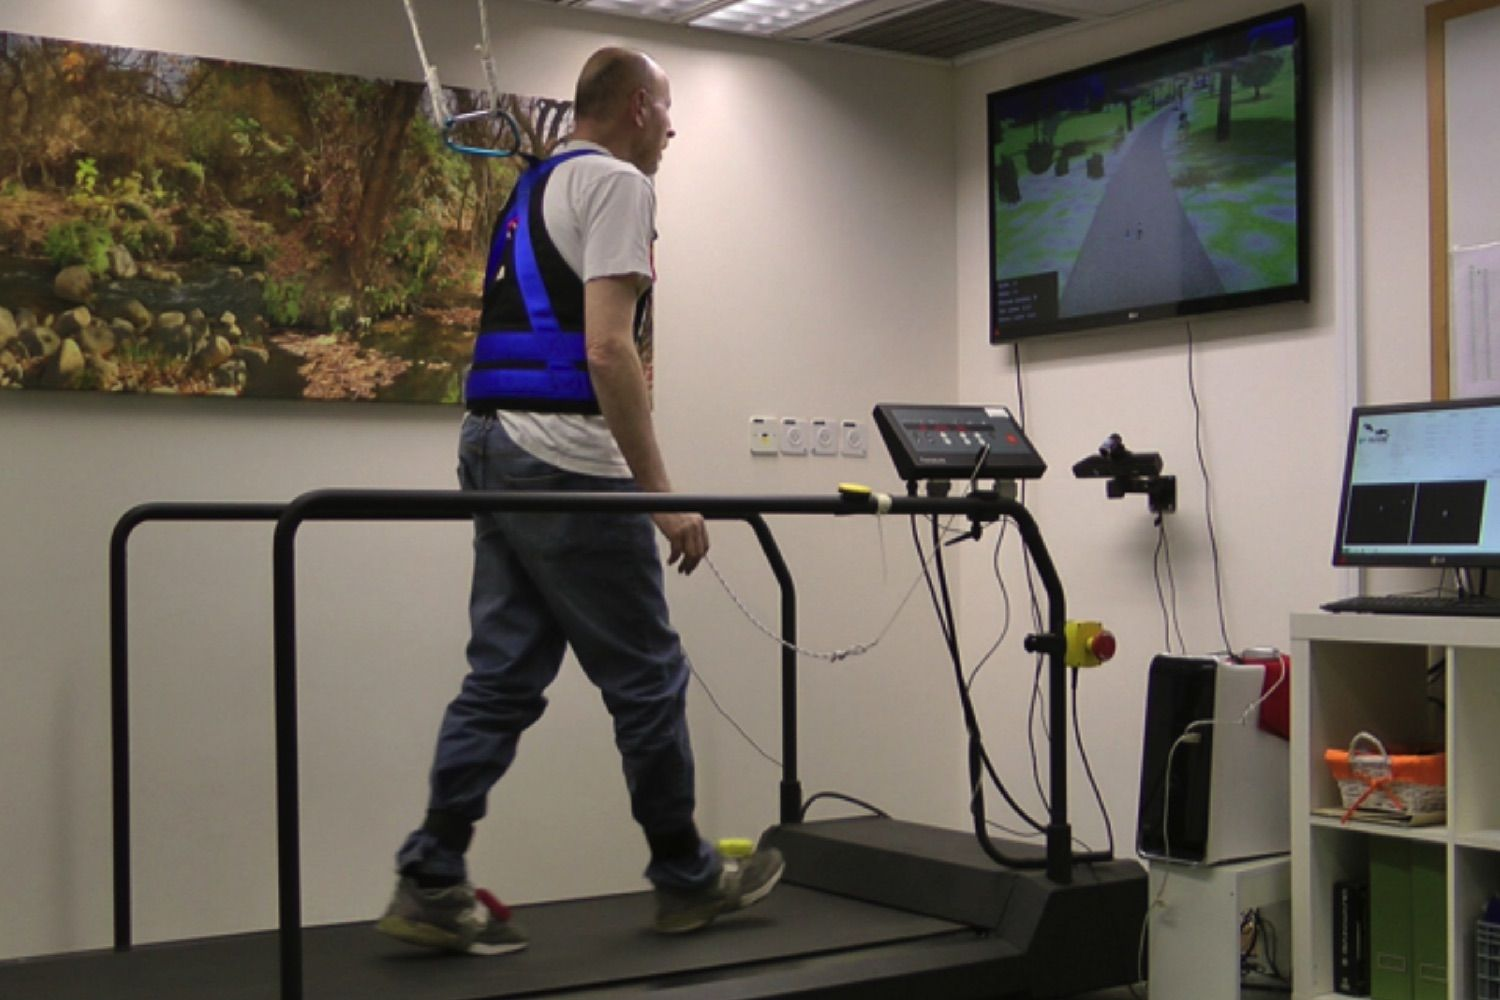 VR Obstacle Course Could Help Seniors Avoid Falls